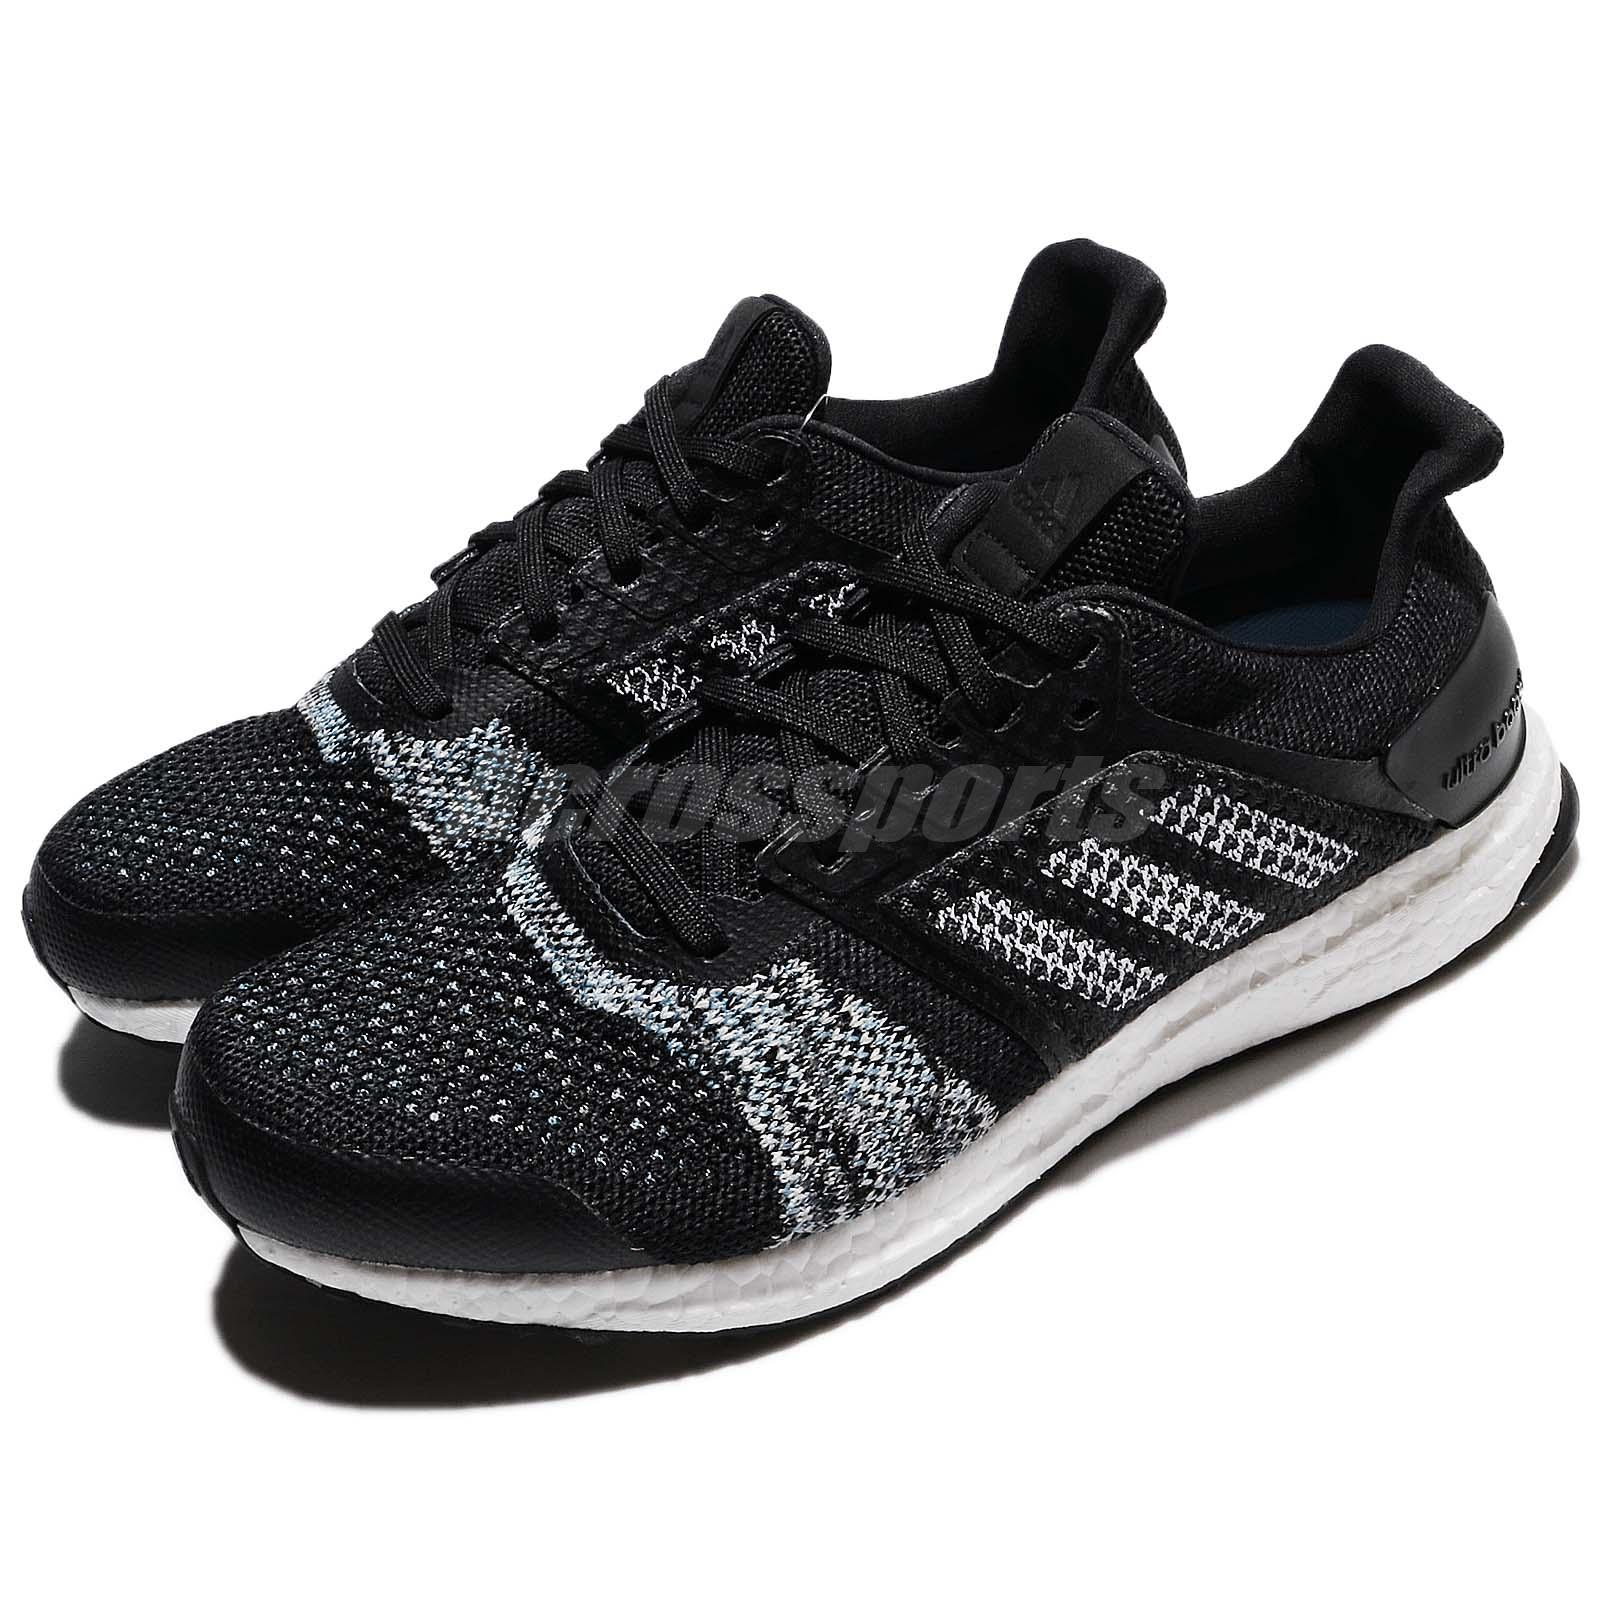 watch f999b 4d8e5 Details about adidas UltraB OOST ST M PrimeKnit Black White Men Running  Shoes Sneakers CQ2144